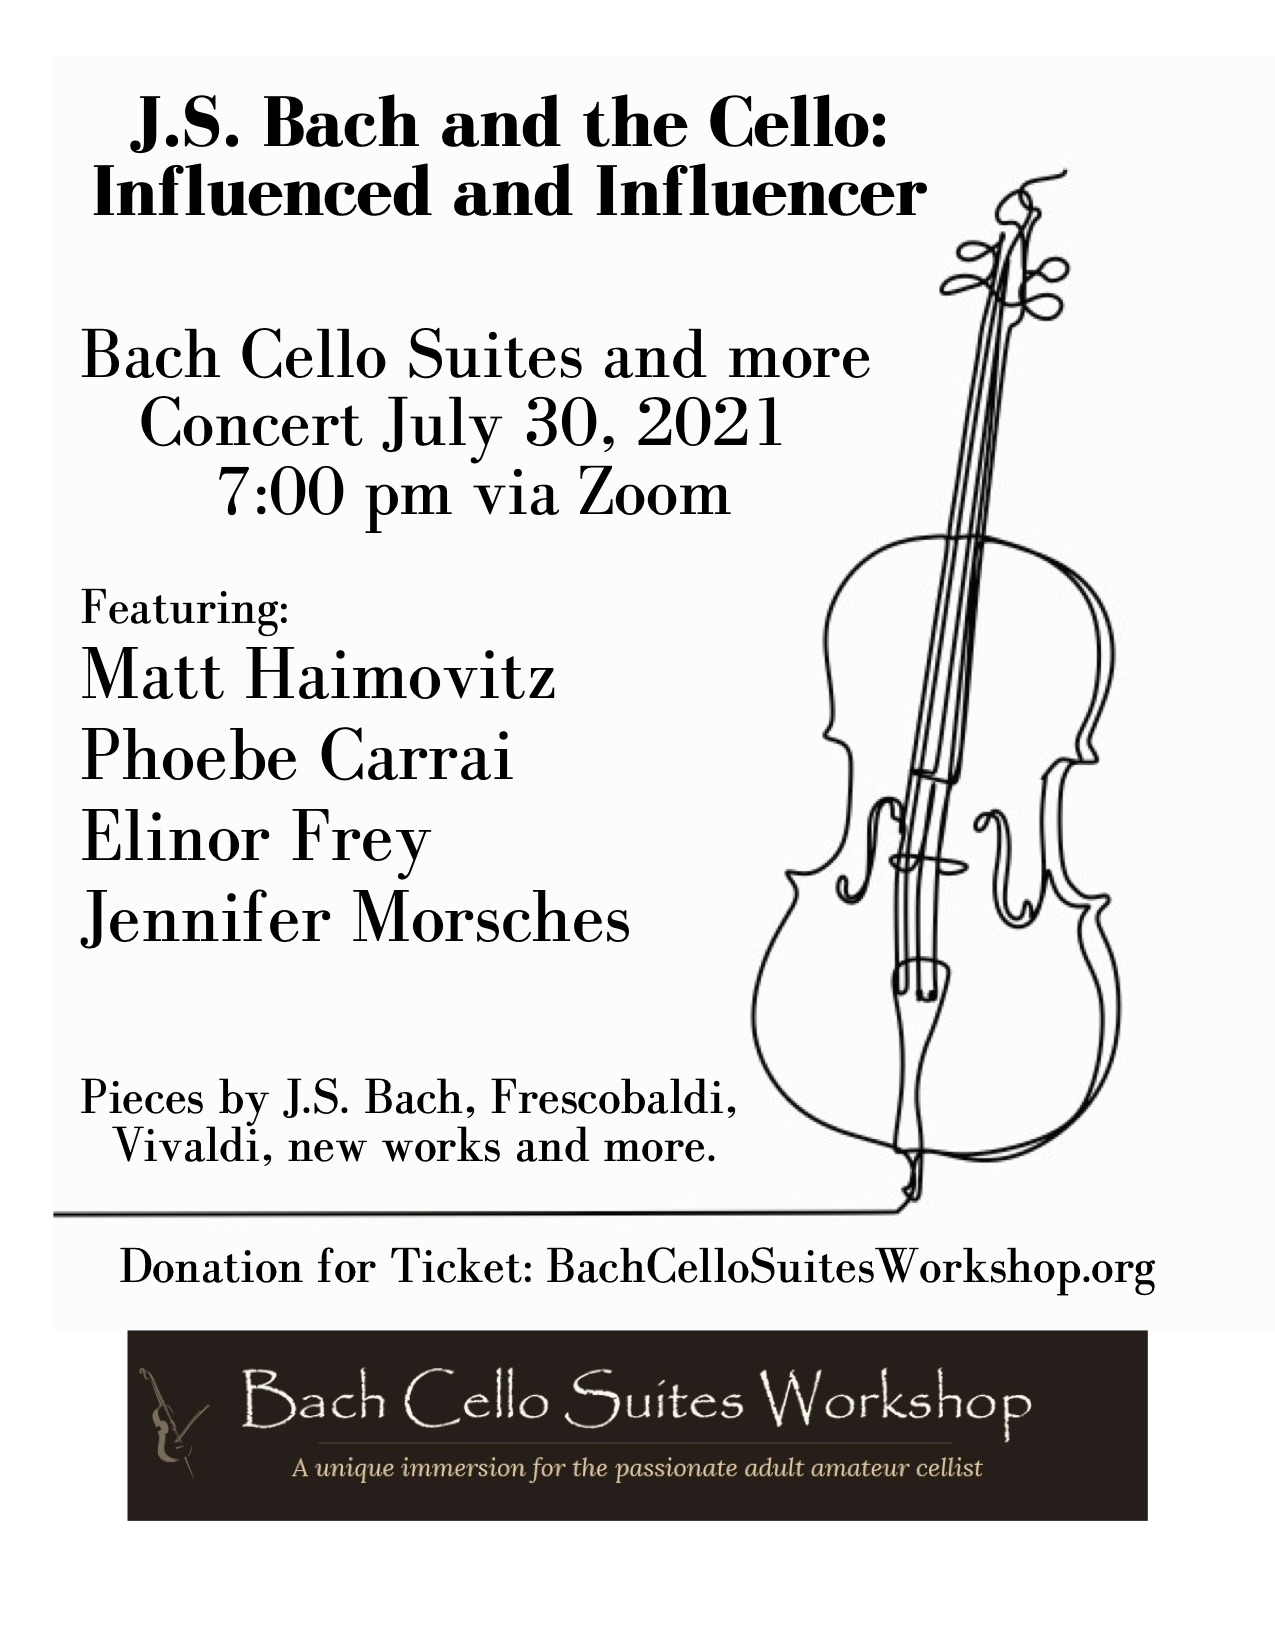 Uploaded Image: /uploads/J.S. Bach and the Cello Influenced and Influencer copy.jpg